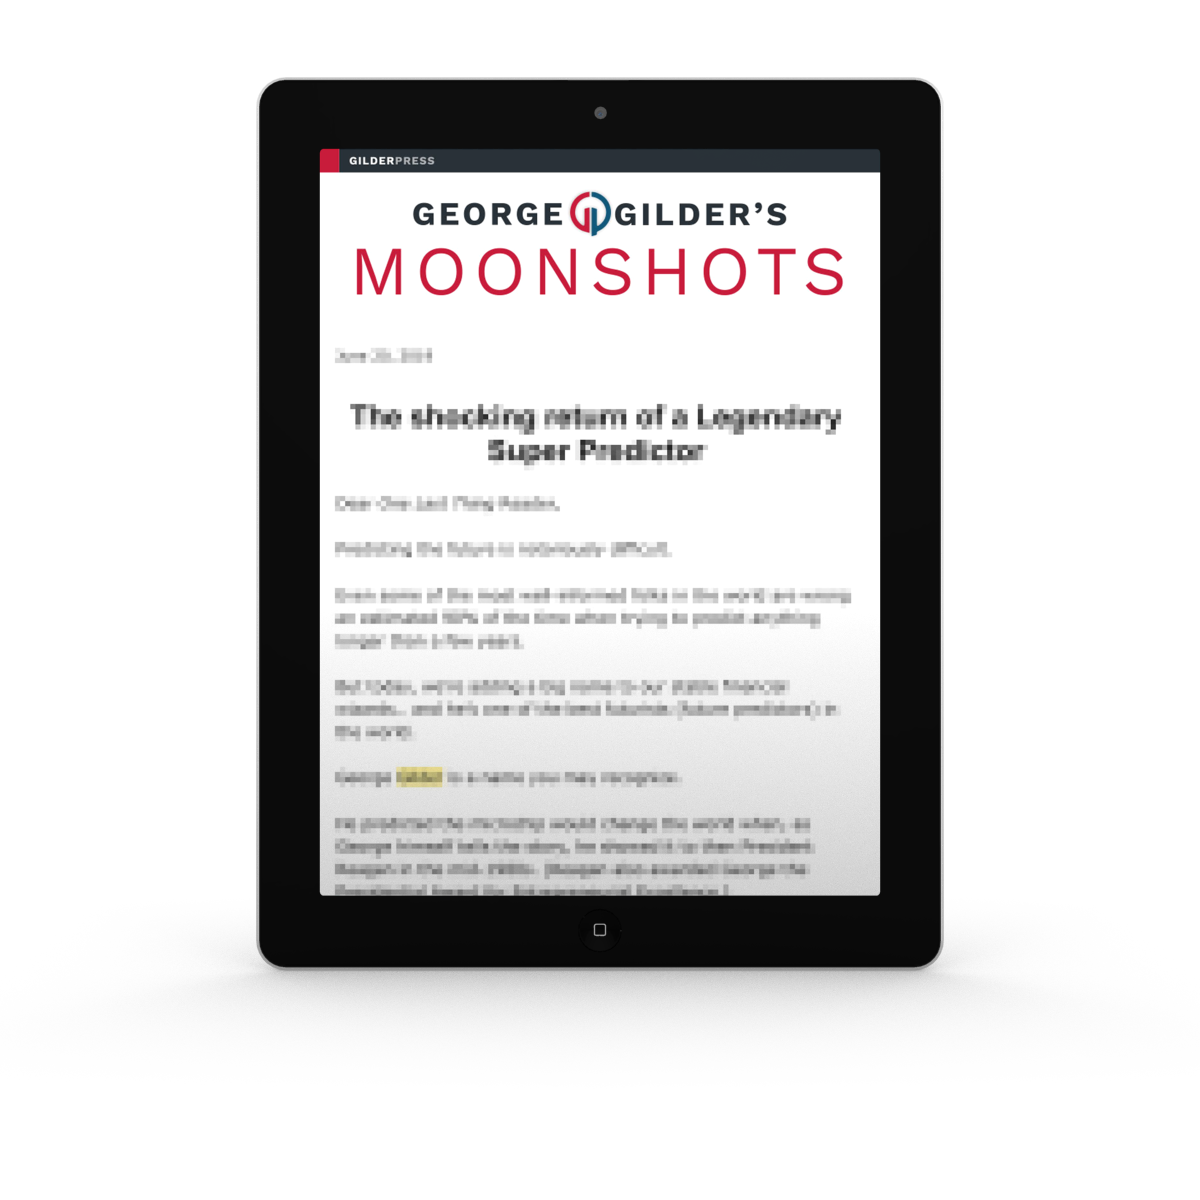 Moonshots on iPad